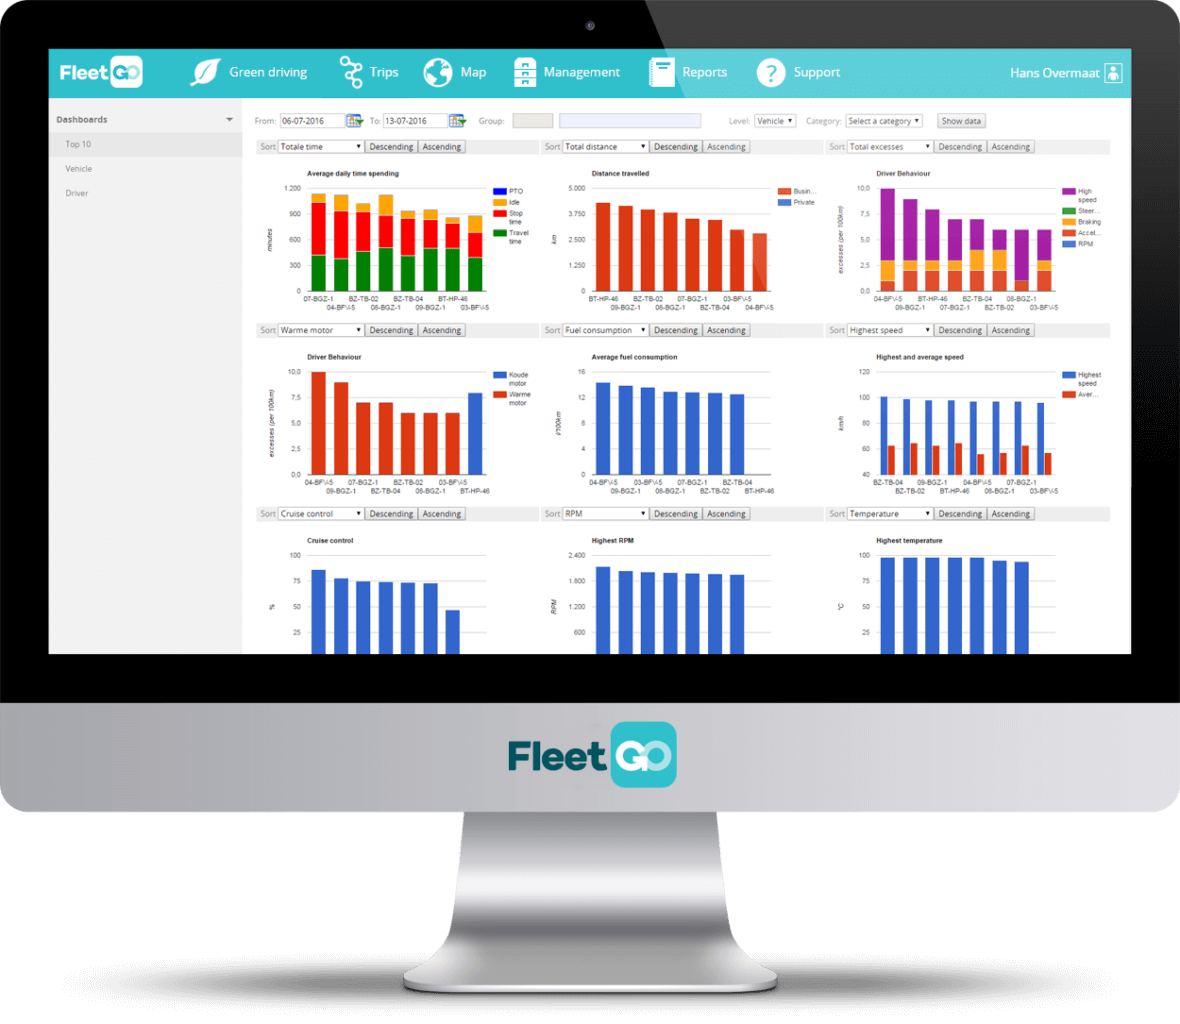 FleetGO Fleet Management Software Dashboards